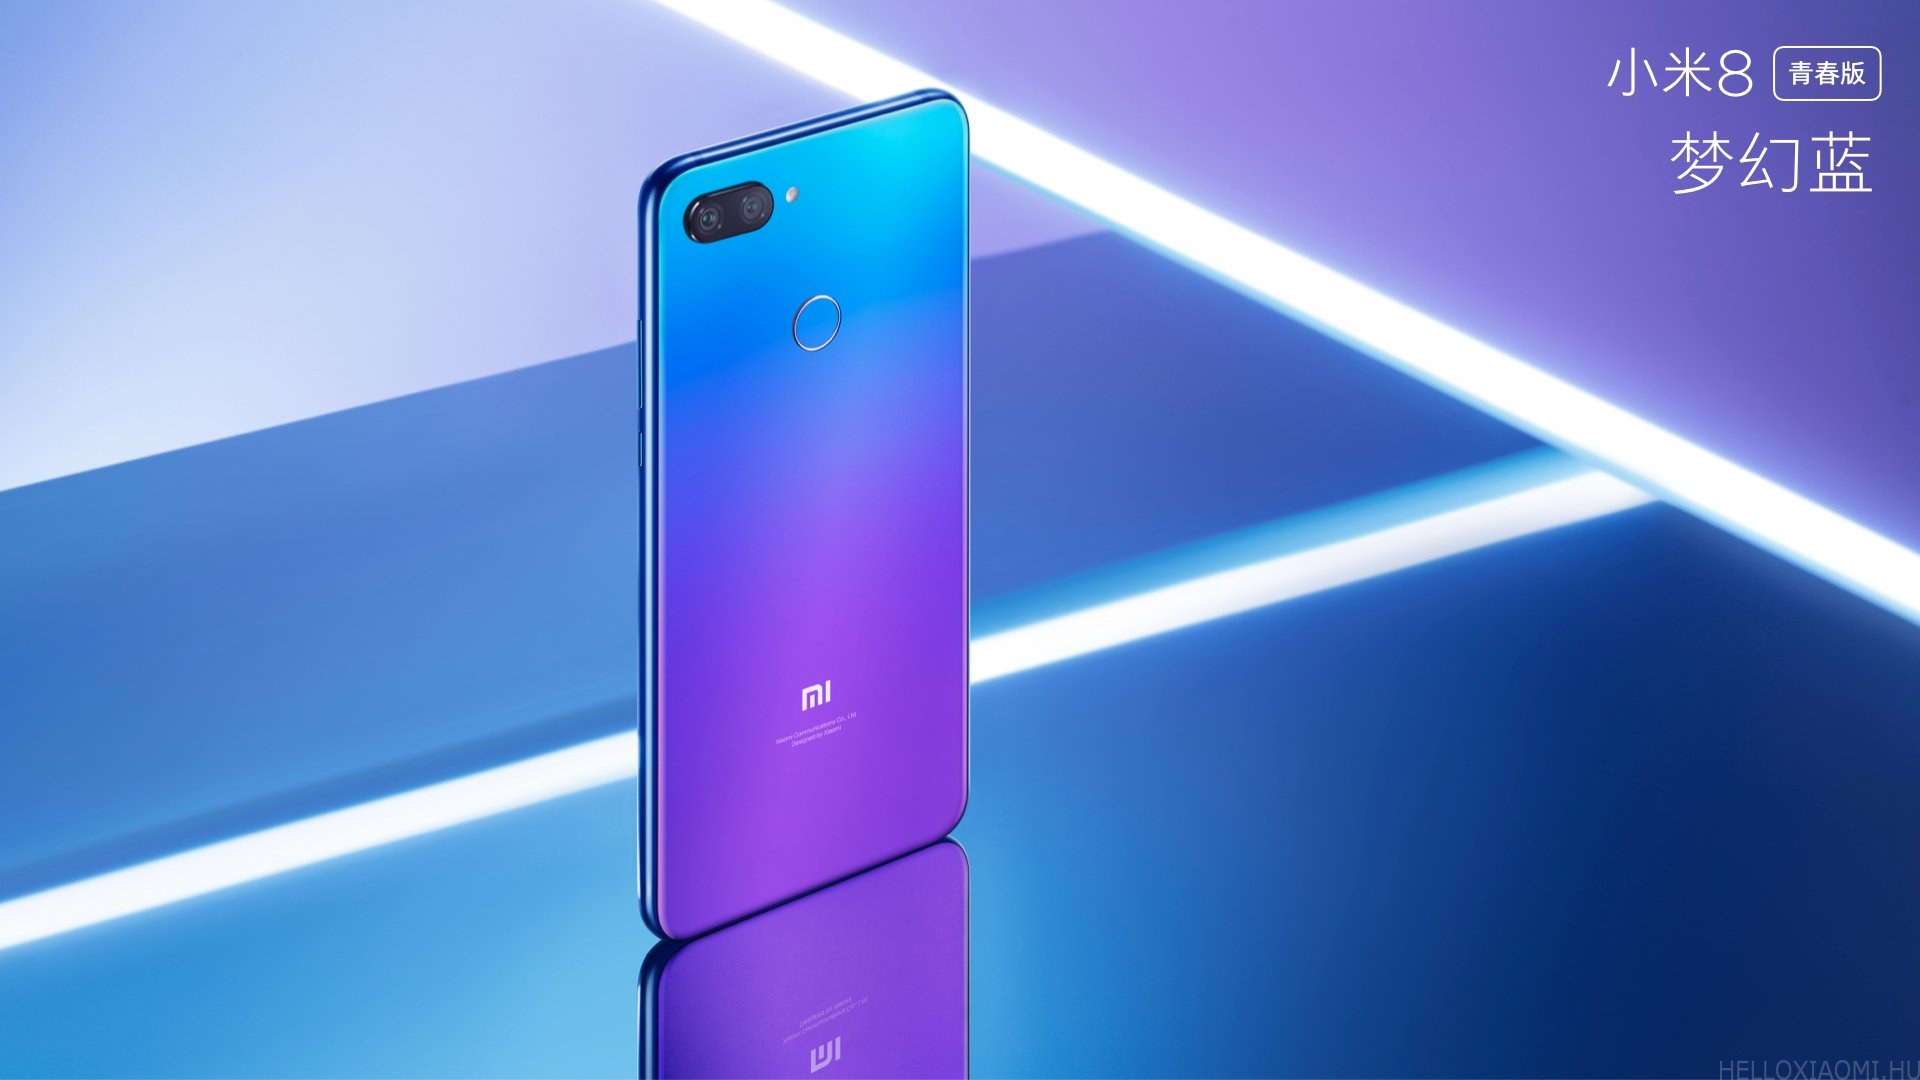 Mi 8 Lite With Snapdragon 660 and 19:9 Display - Hello Xiaomi